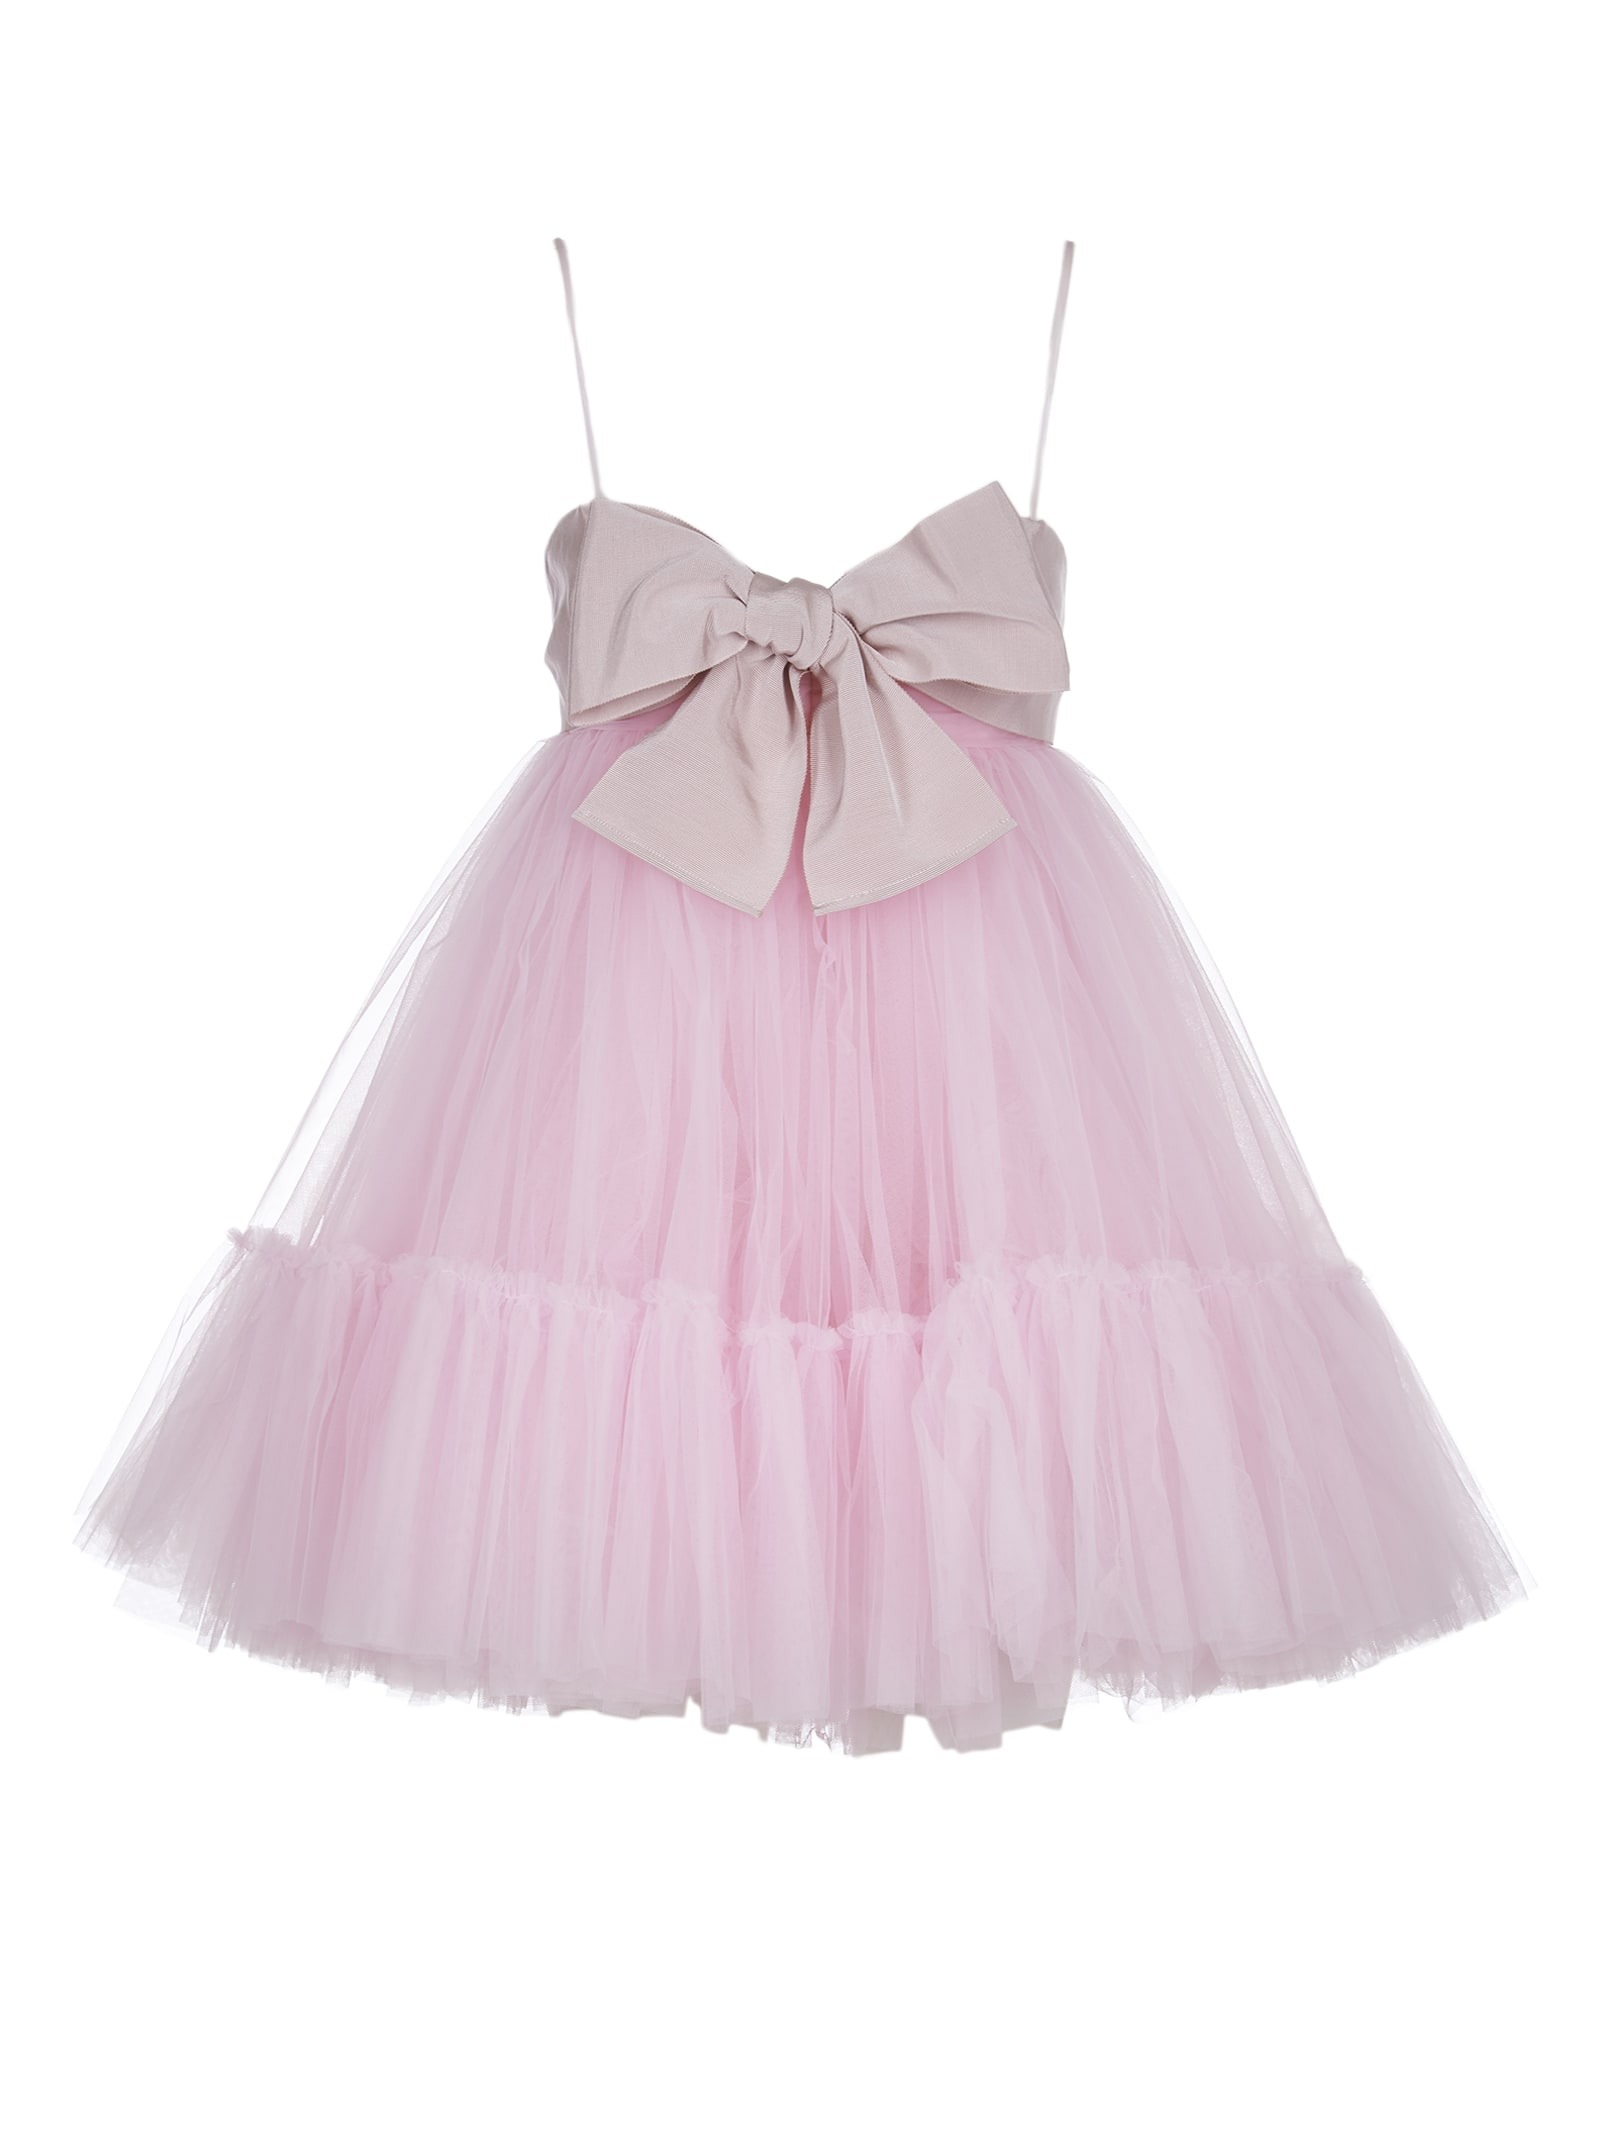 Brognano Pink Dress With Bow